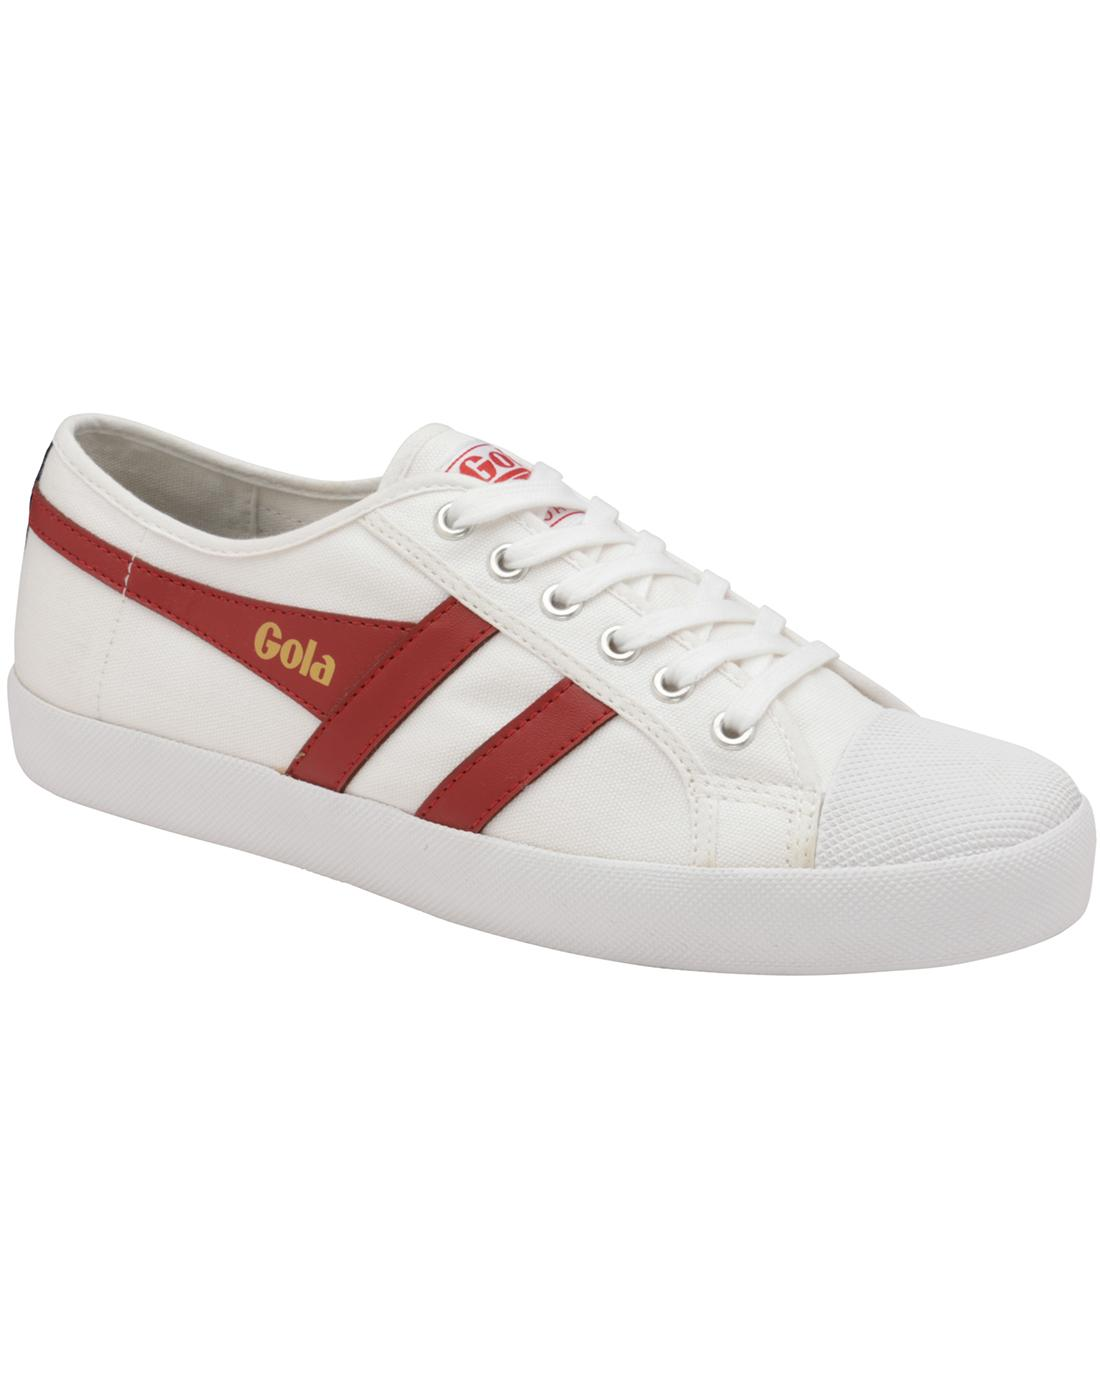 Coaster GOLA Mens Retro 70s Canvas Trainers (WRN)